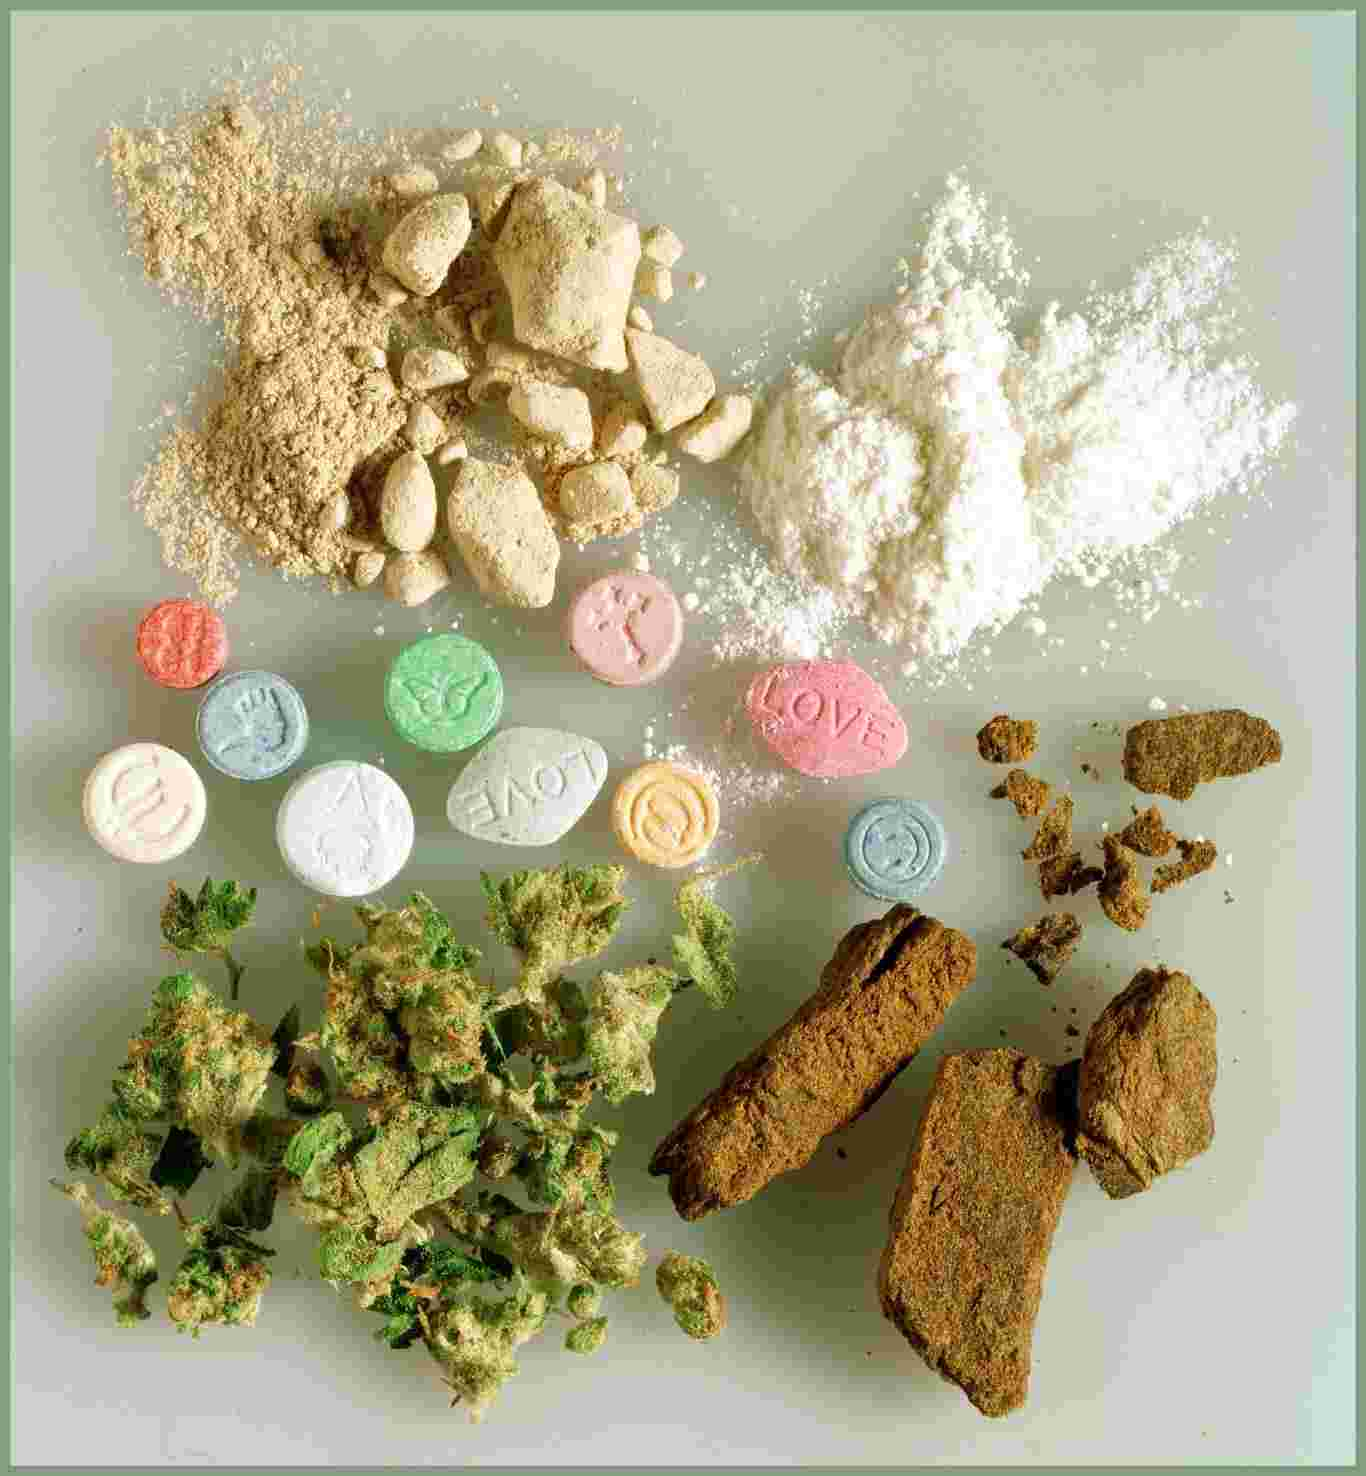 how the use of illegal drugs effects my community